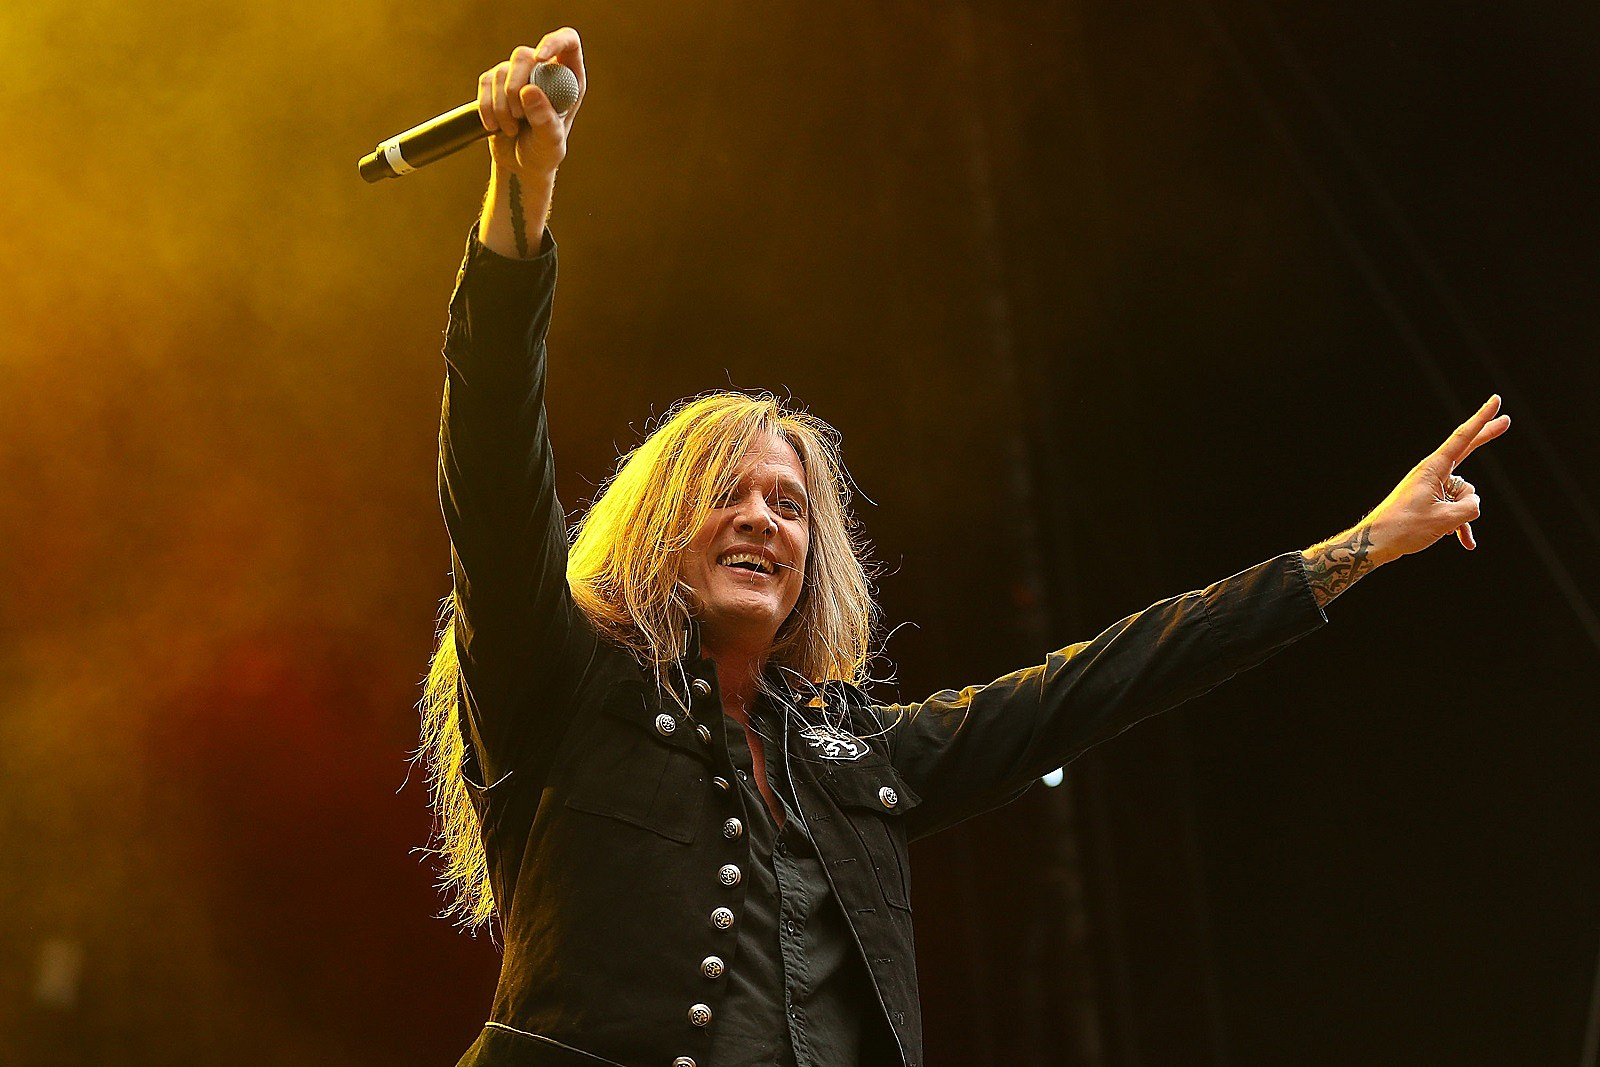 Sebastian Bach Talks Skid Row and Being the Last of a Dying Breed